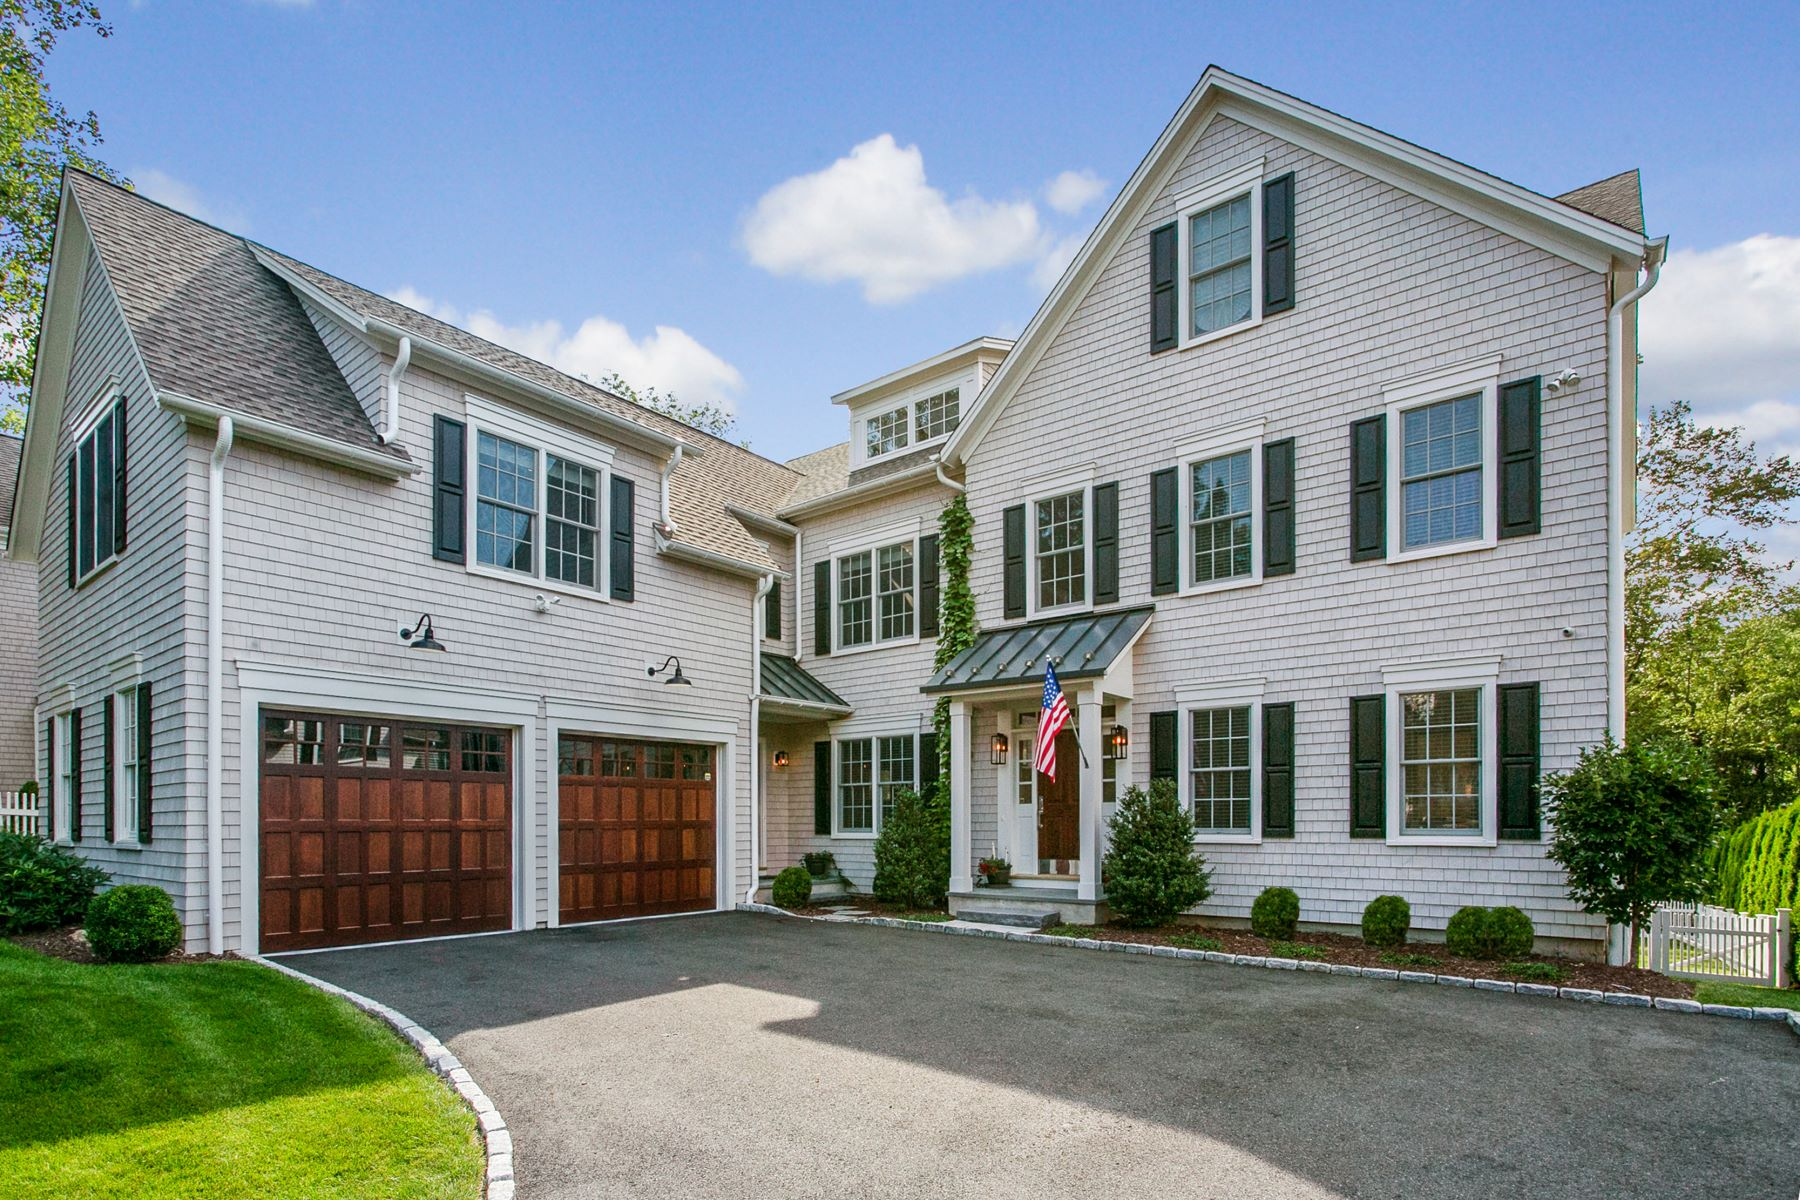 Single Family Homes for Sale at 37 Witch Lane Norwalk, Connecticut 06853 United States